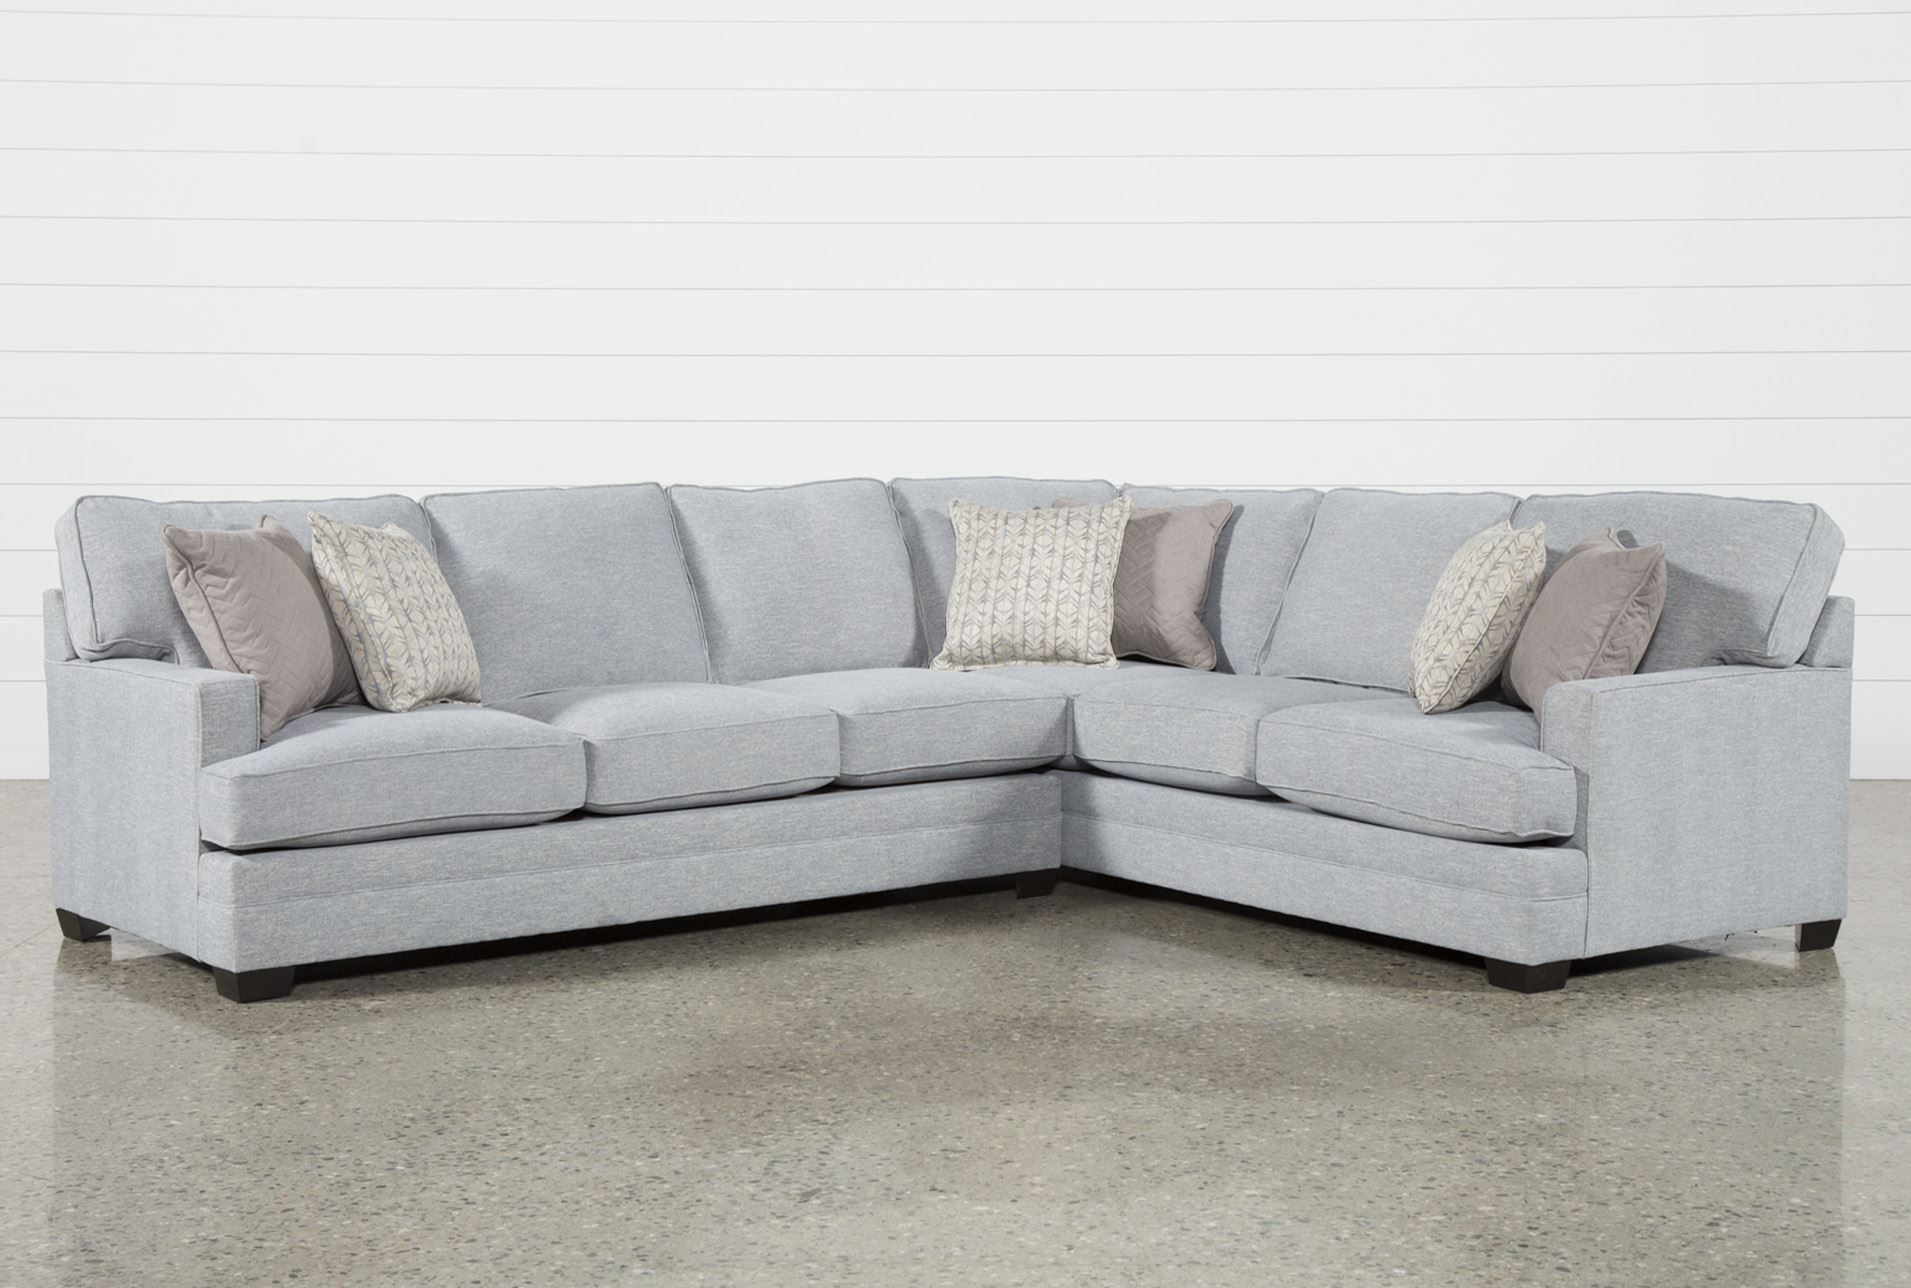 Josephine 2 Piece Sectional W/laf Sofa | Decorating And Interiors In Kerri 2 Piece Sectionals With Raf Chaise (Image 12 of 25)